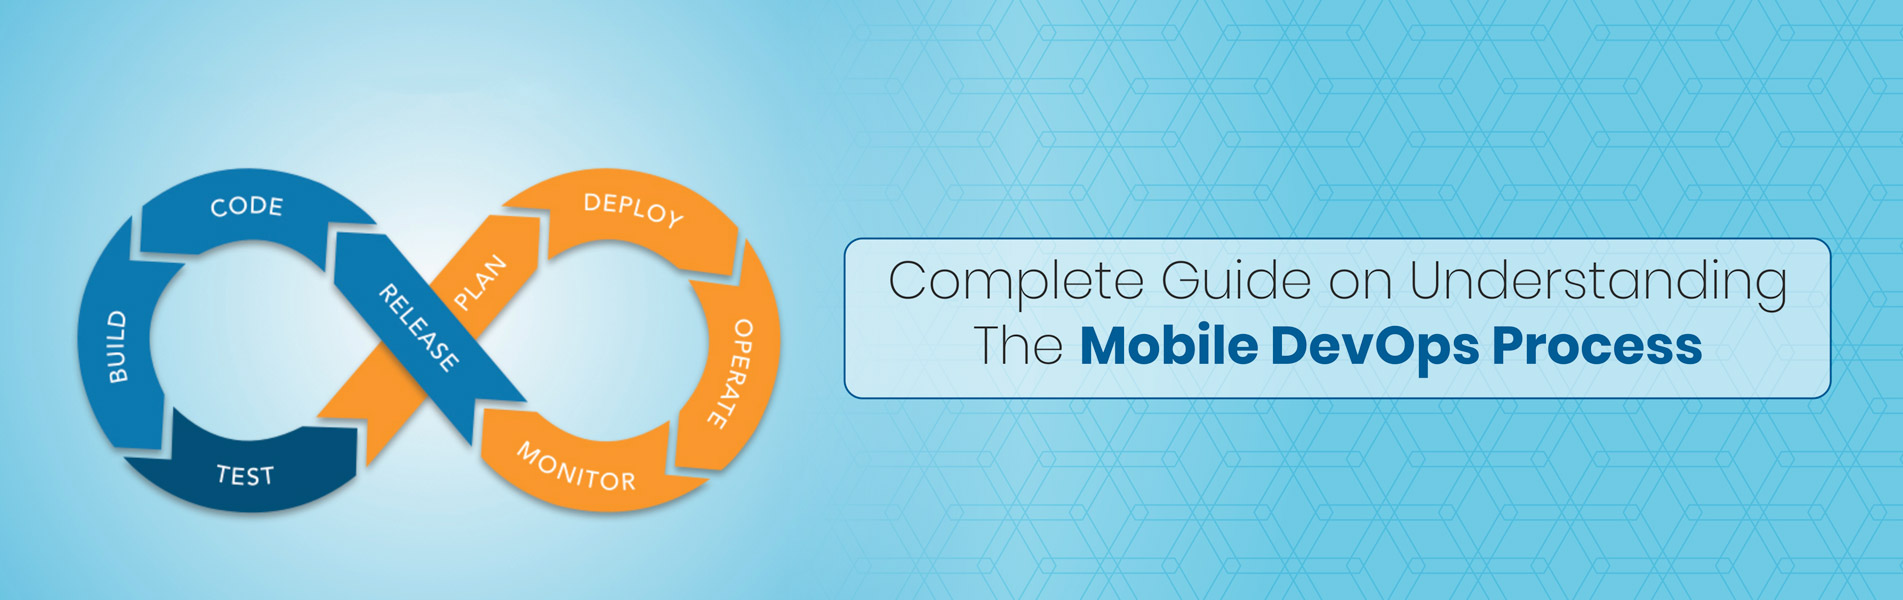 Complete Guide on Understanding The Mobile Devops Process